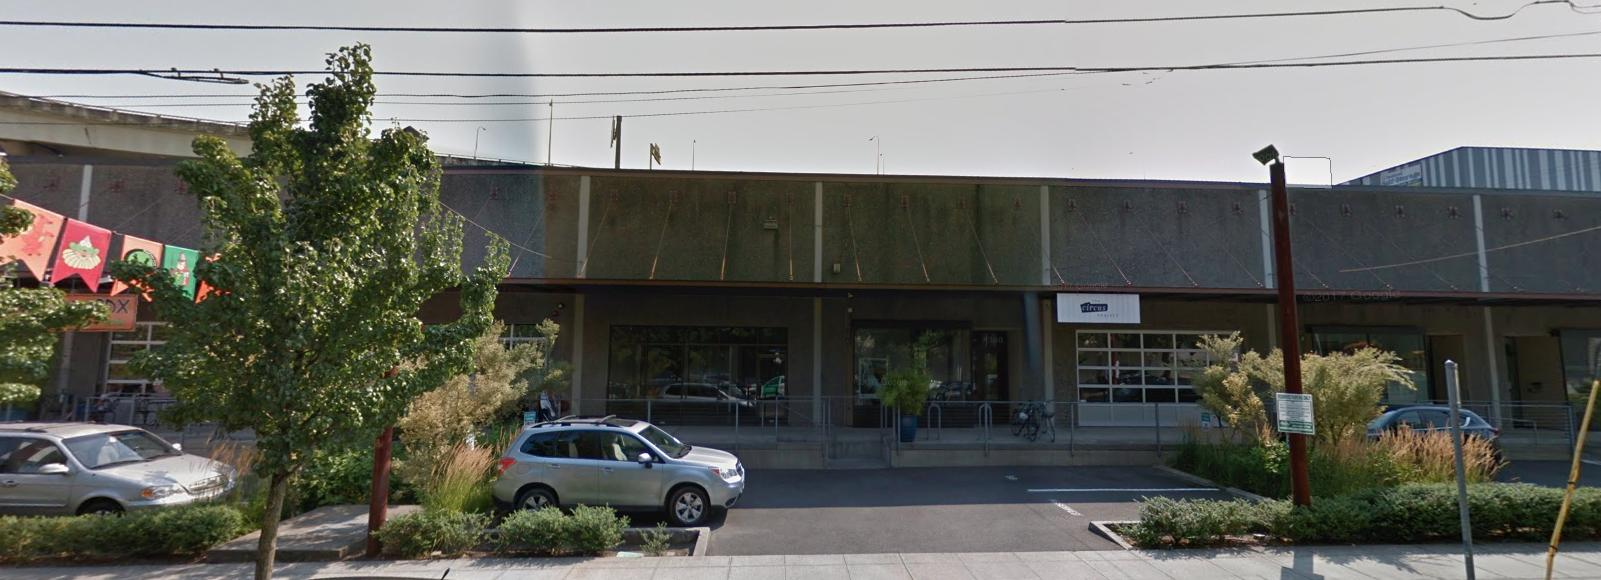 Storefront image of Focus1 Insurance Group, Insurance Agency in Portland, OR